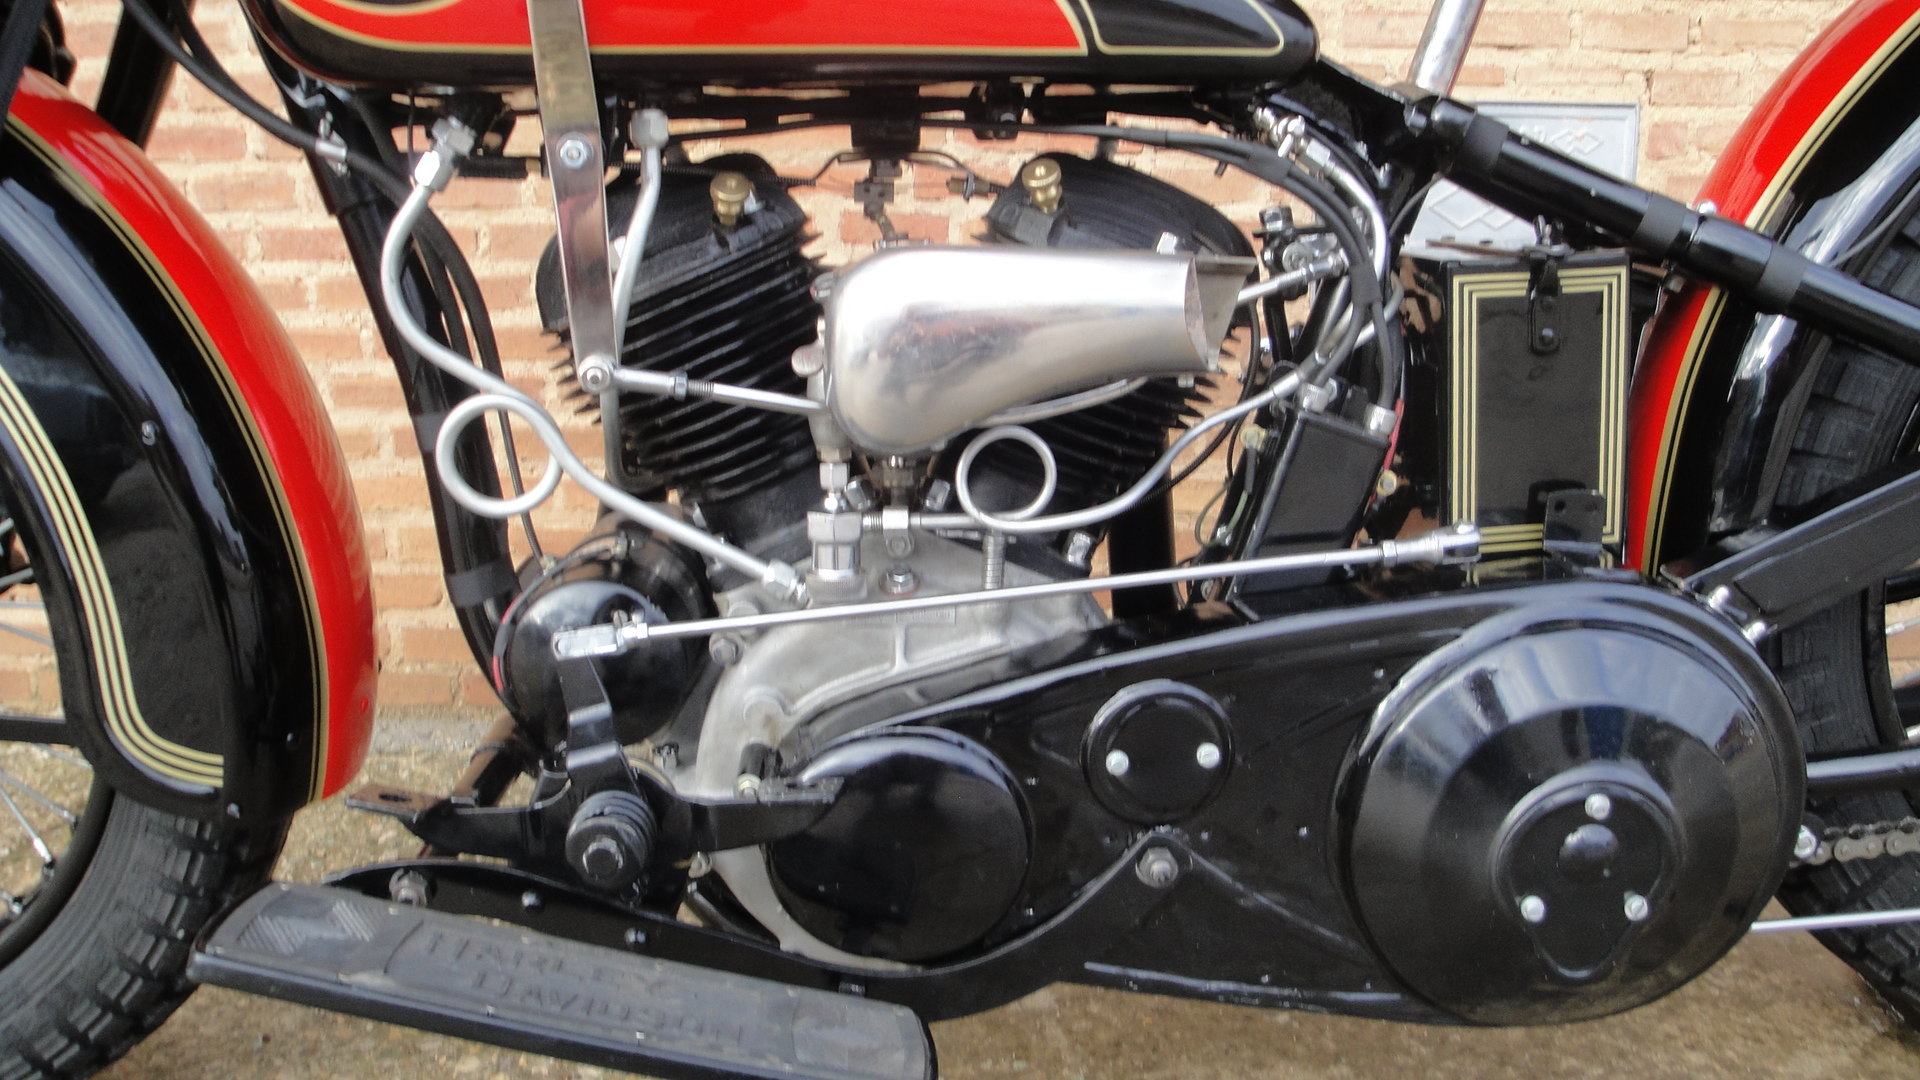 """1933 Harley davidson 33vf 74"""" special model For Sale (picture 4 of 6)"""